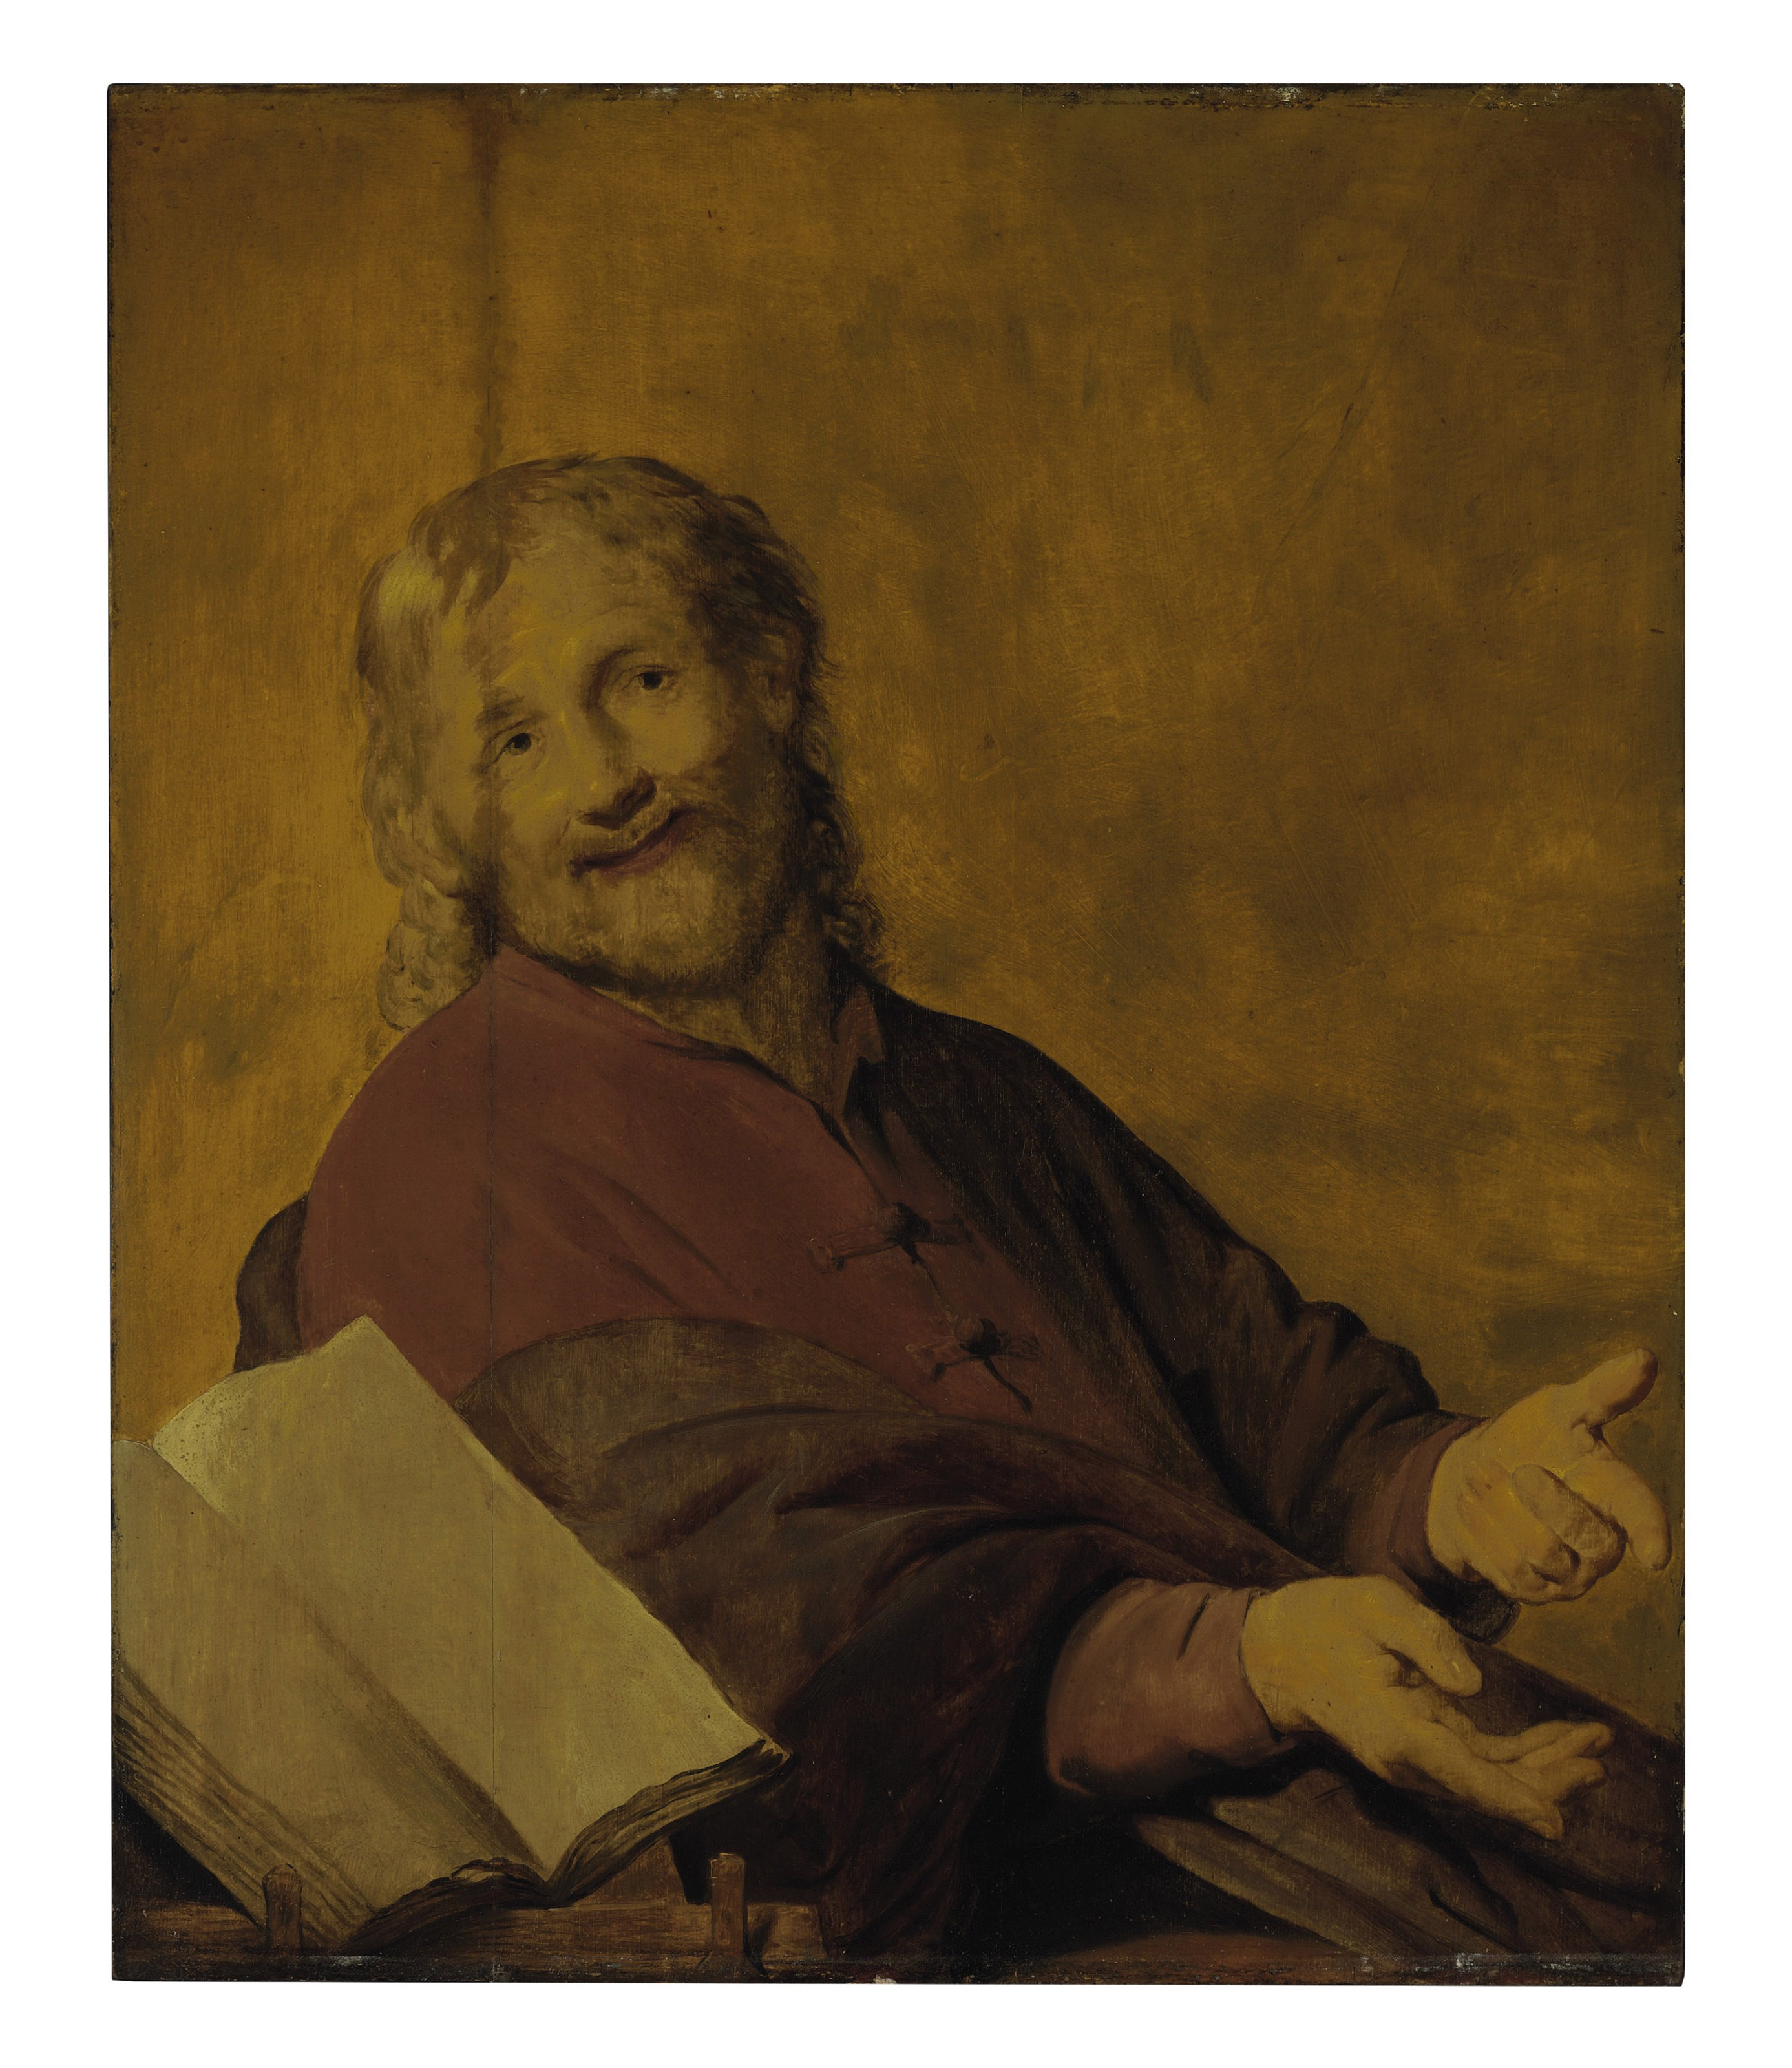 The Laughing Philosopher